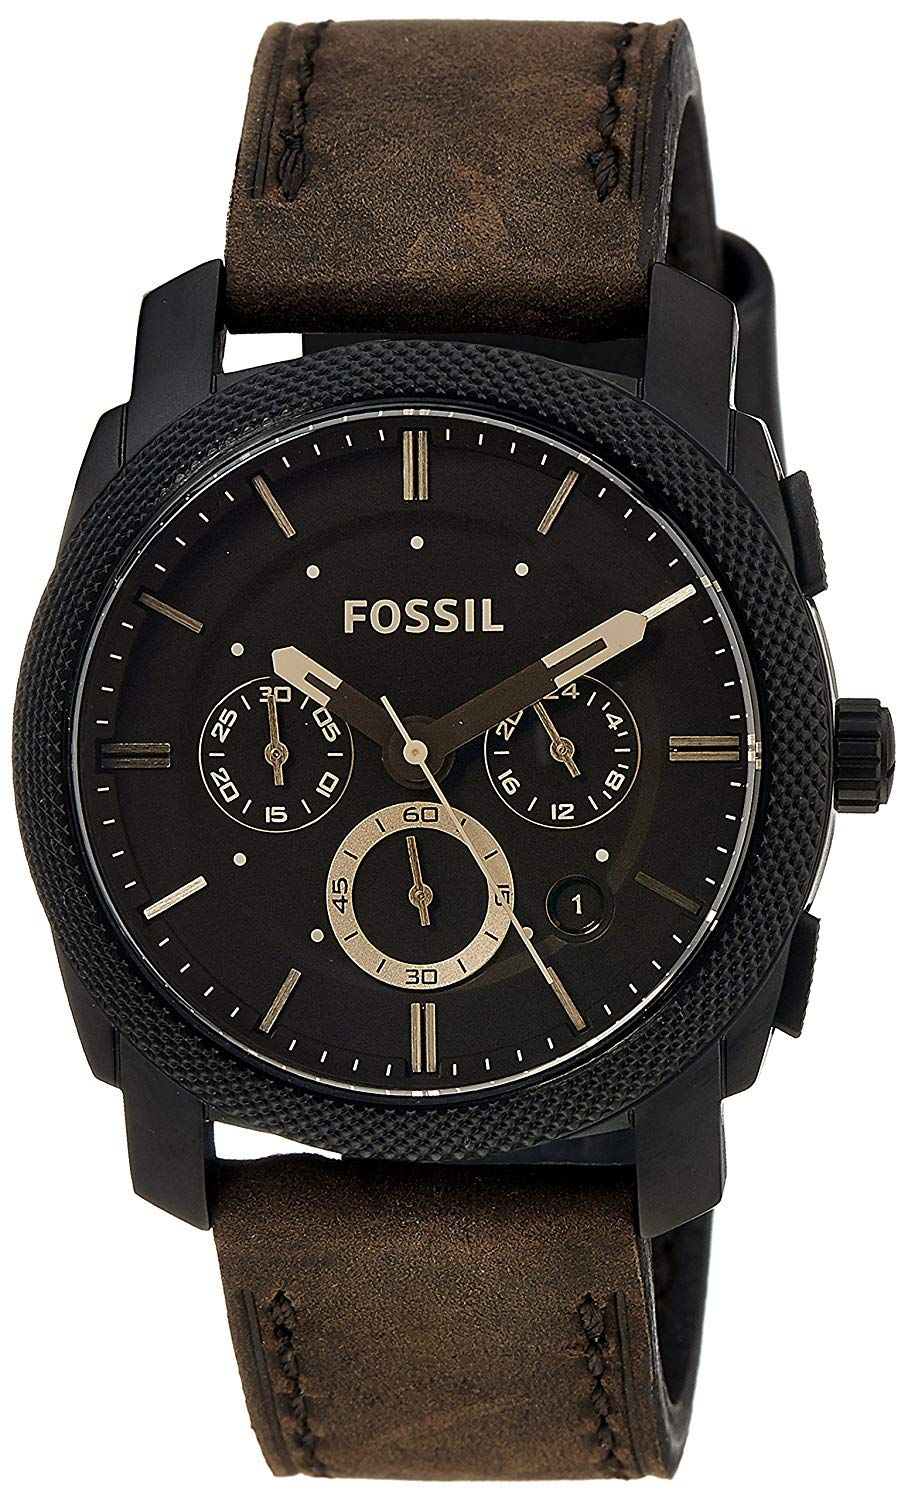 Make a statement with this dramatic timepiece featuring a